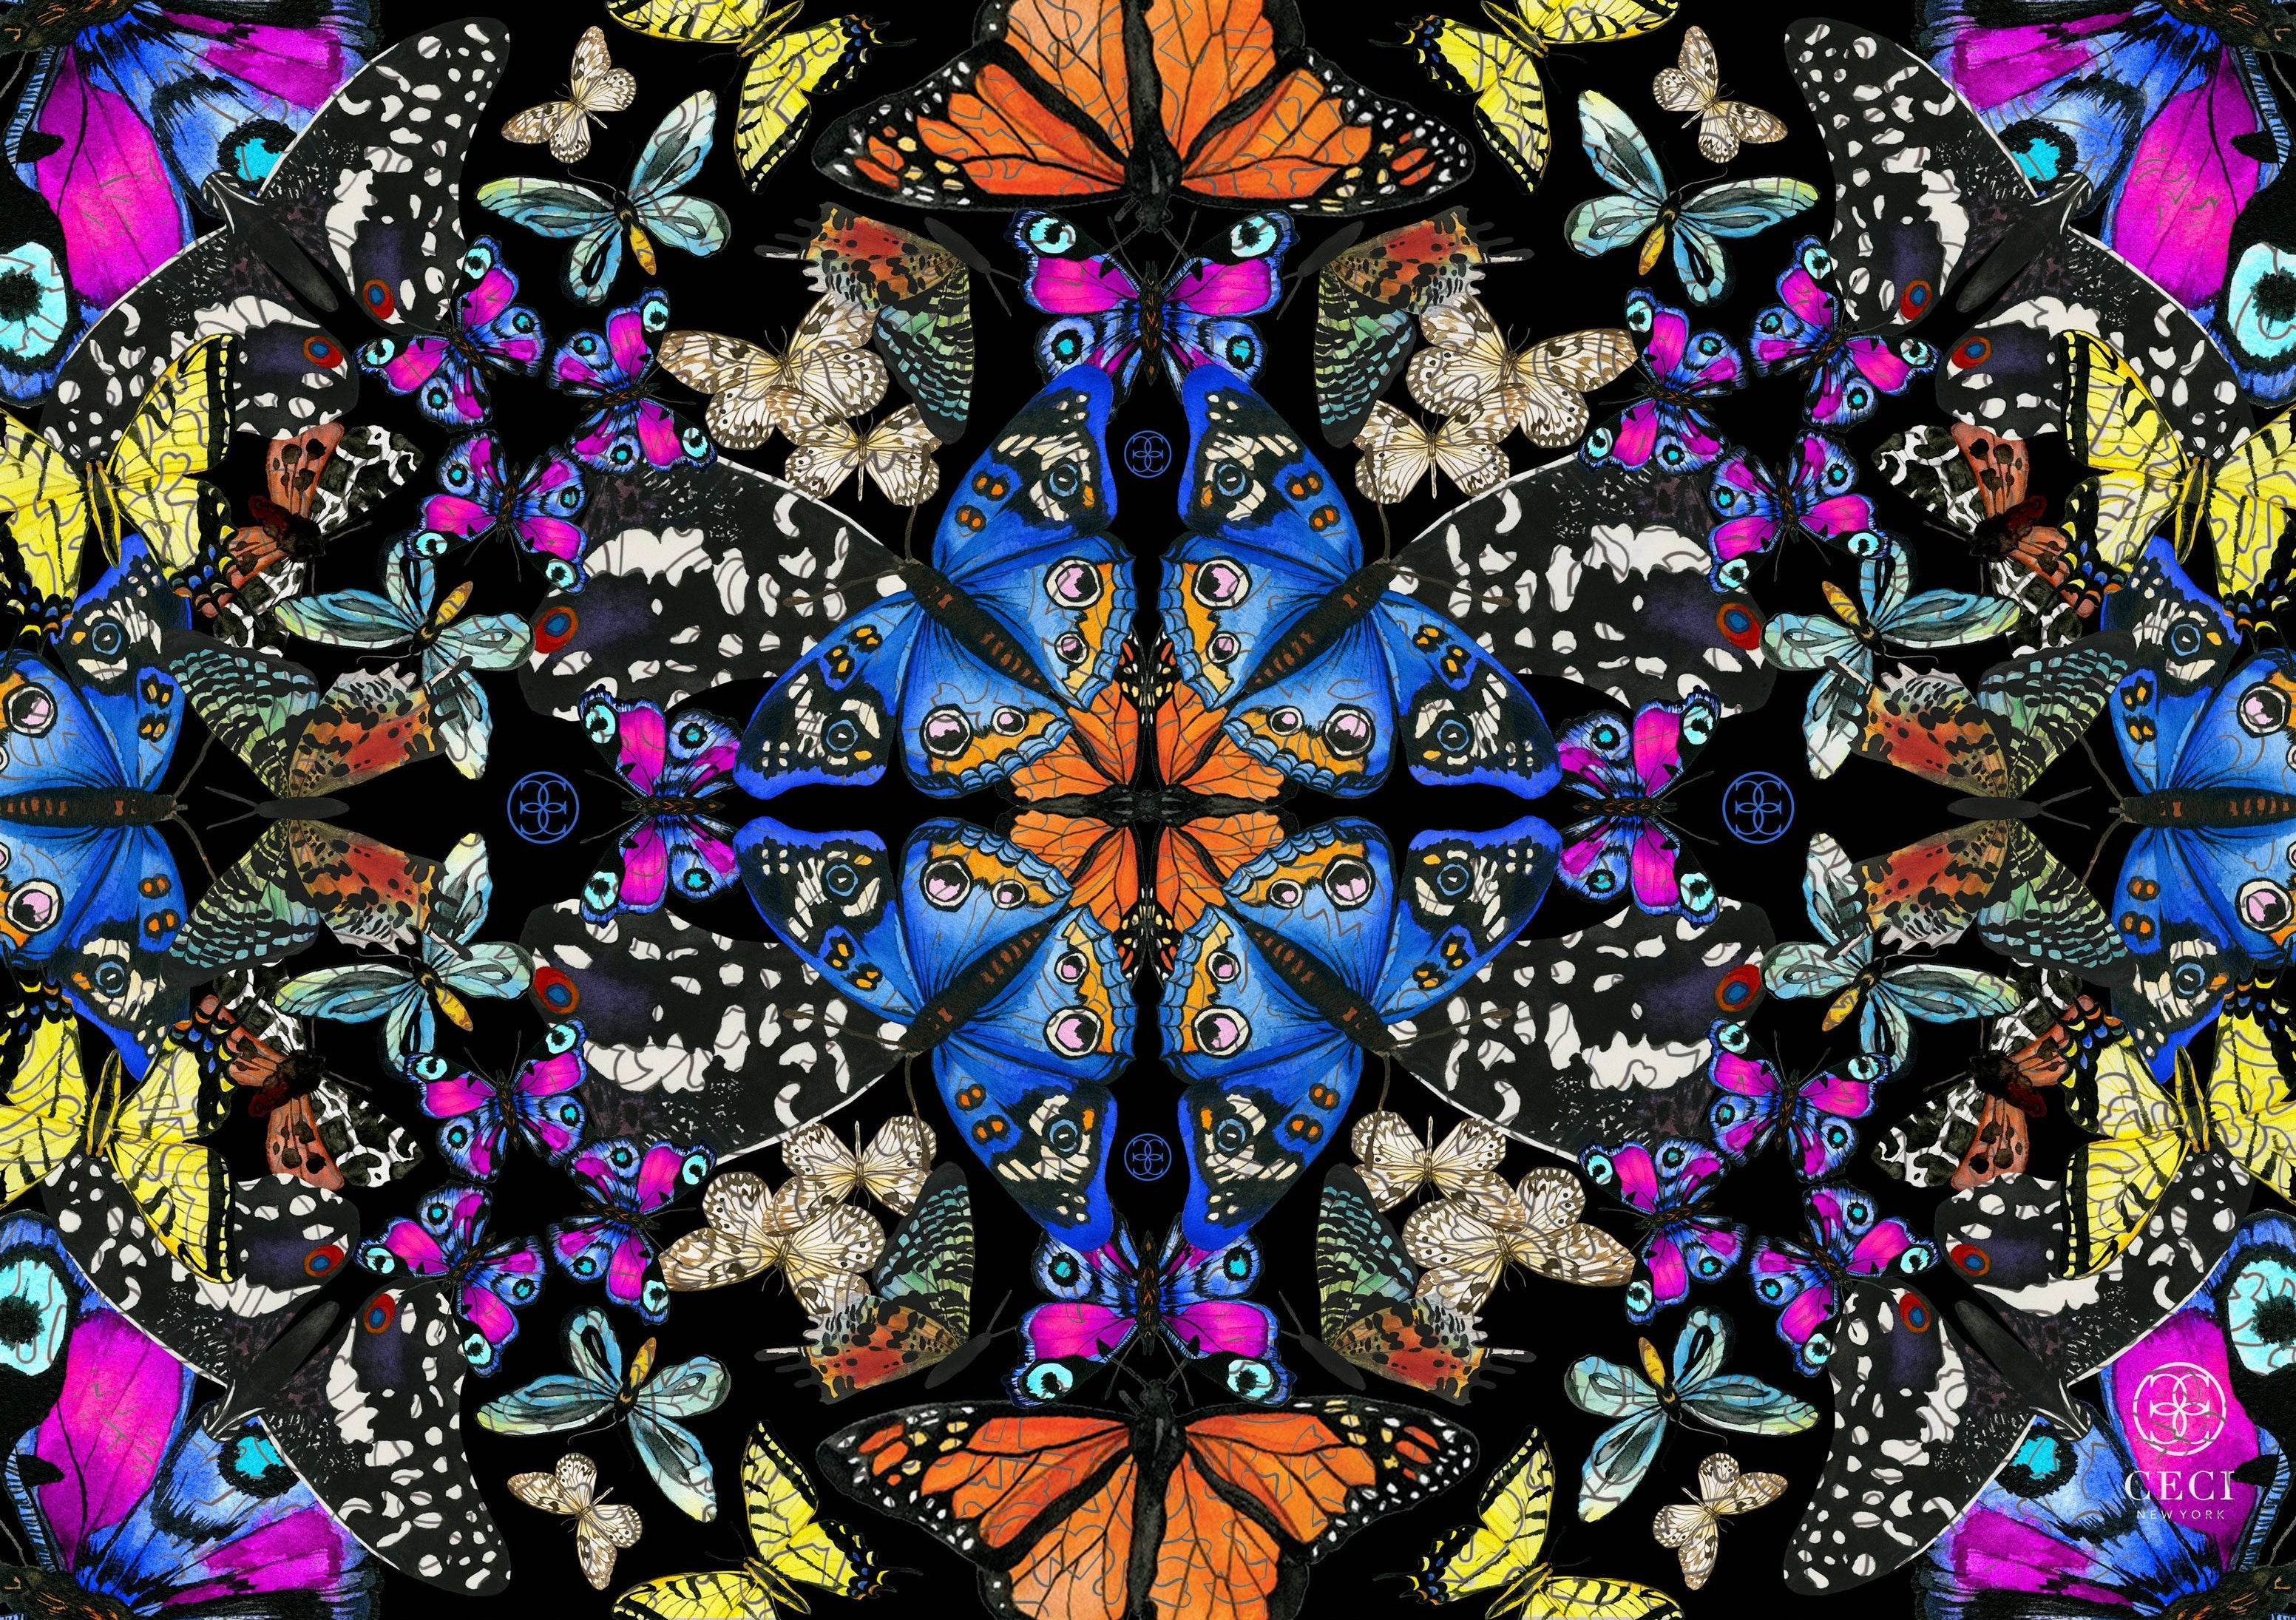 Butterfly Kaleidoscope by Ceci New York